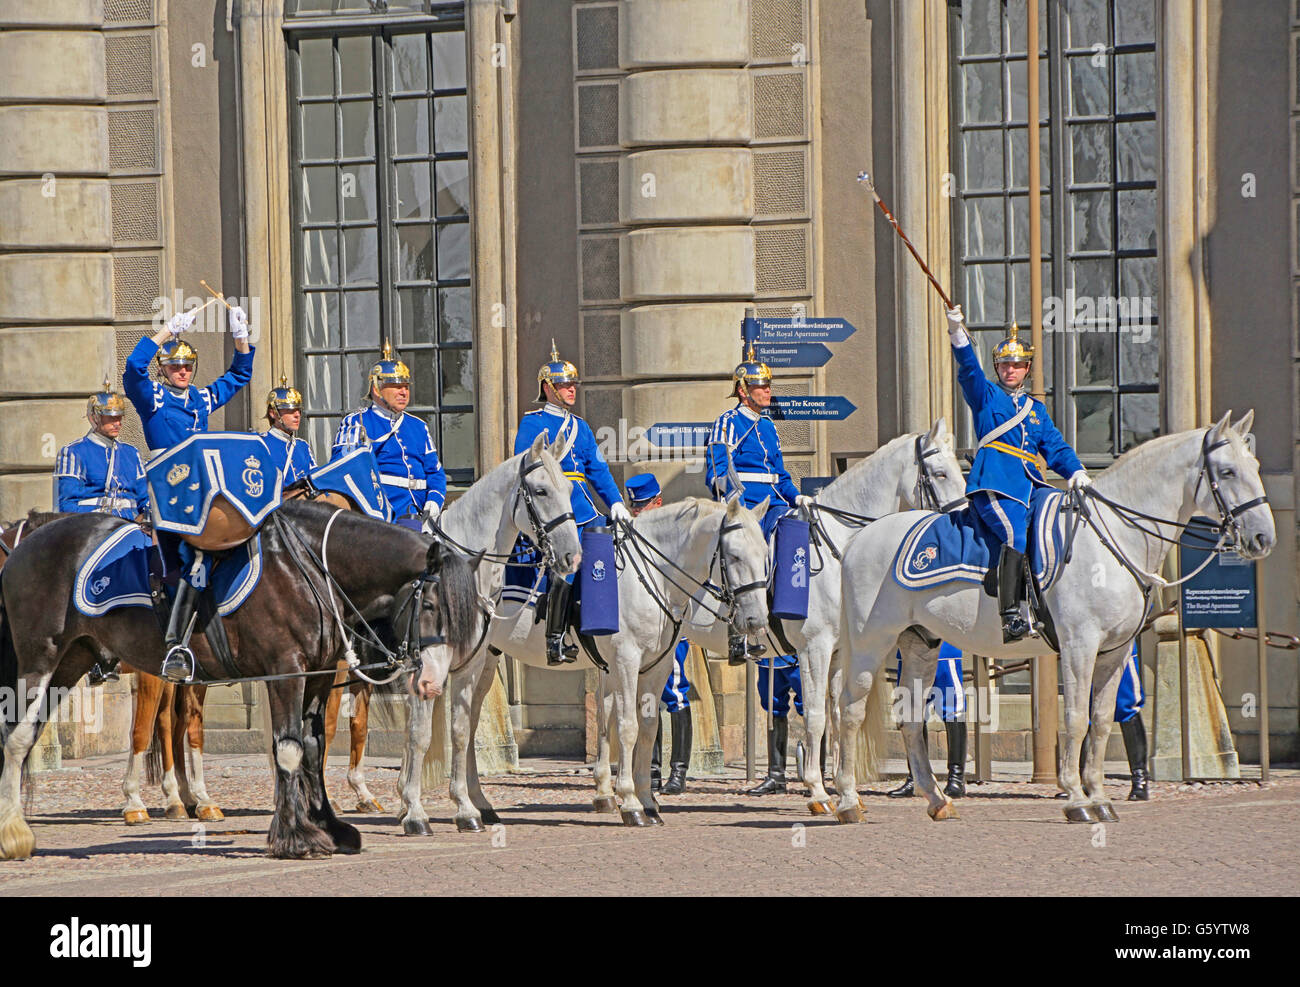 Relève de la garde au Palais Royal de Stockholm, Suède. Photo Stock